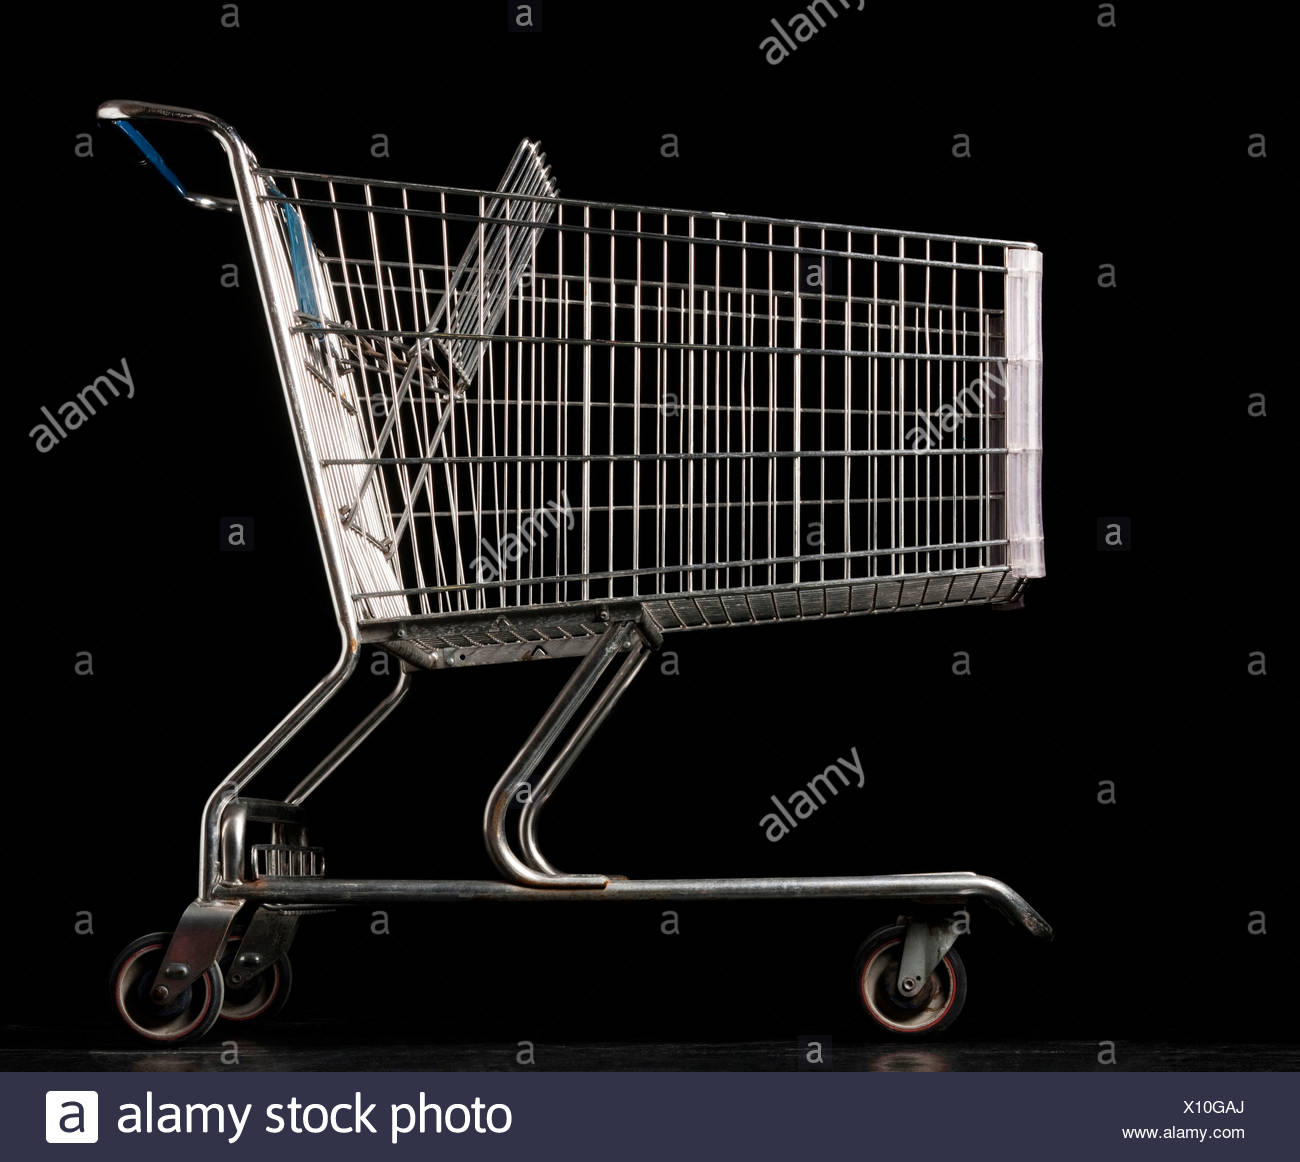 Shopping cart, side view - Stock Image